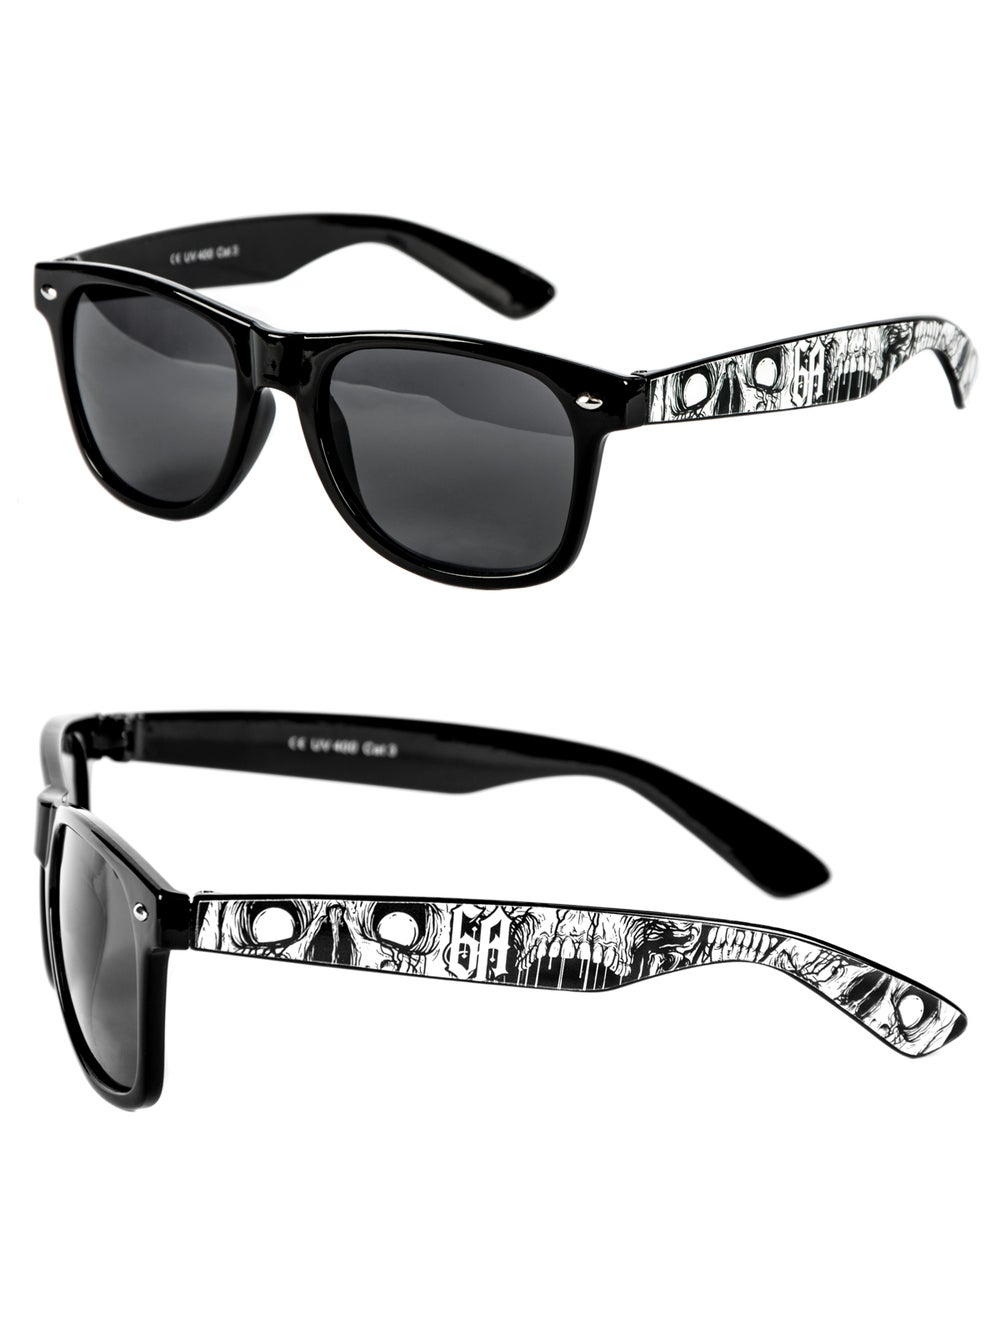 Image of GraveArt Sunglasses